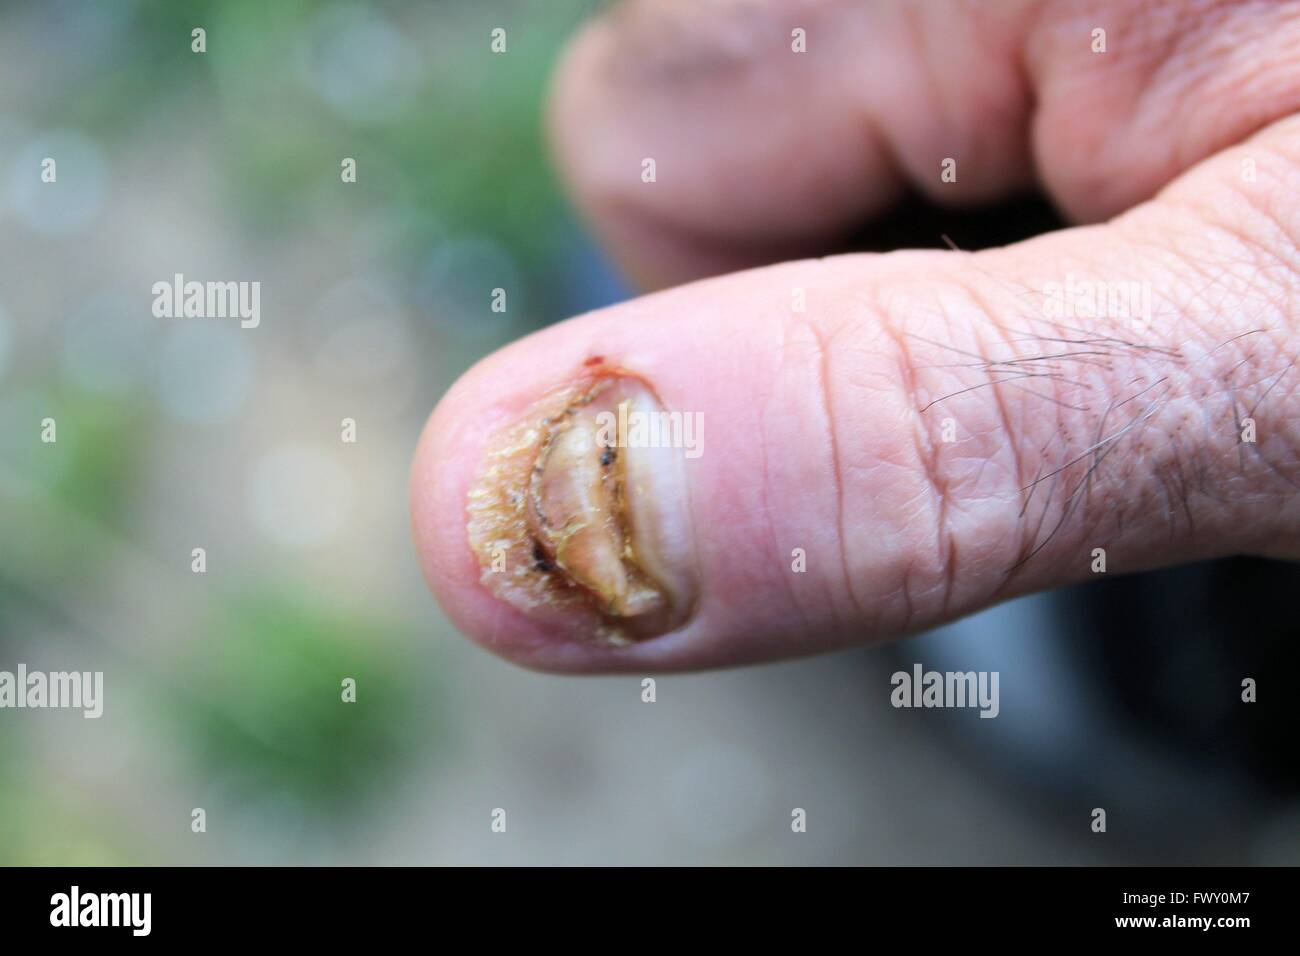 swollen finger without fingernail Stock Photo: 102011511 - Alamy